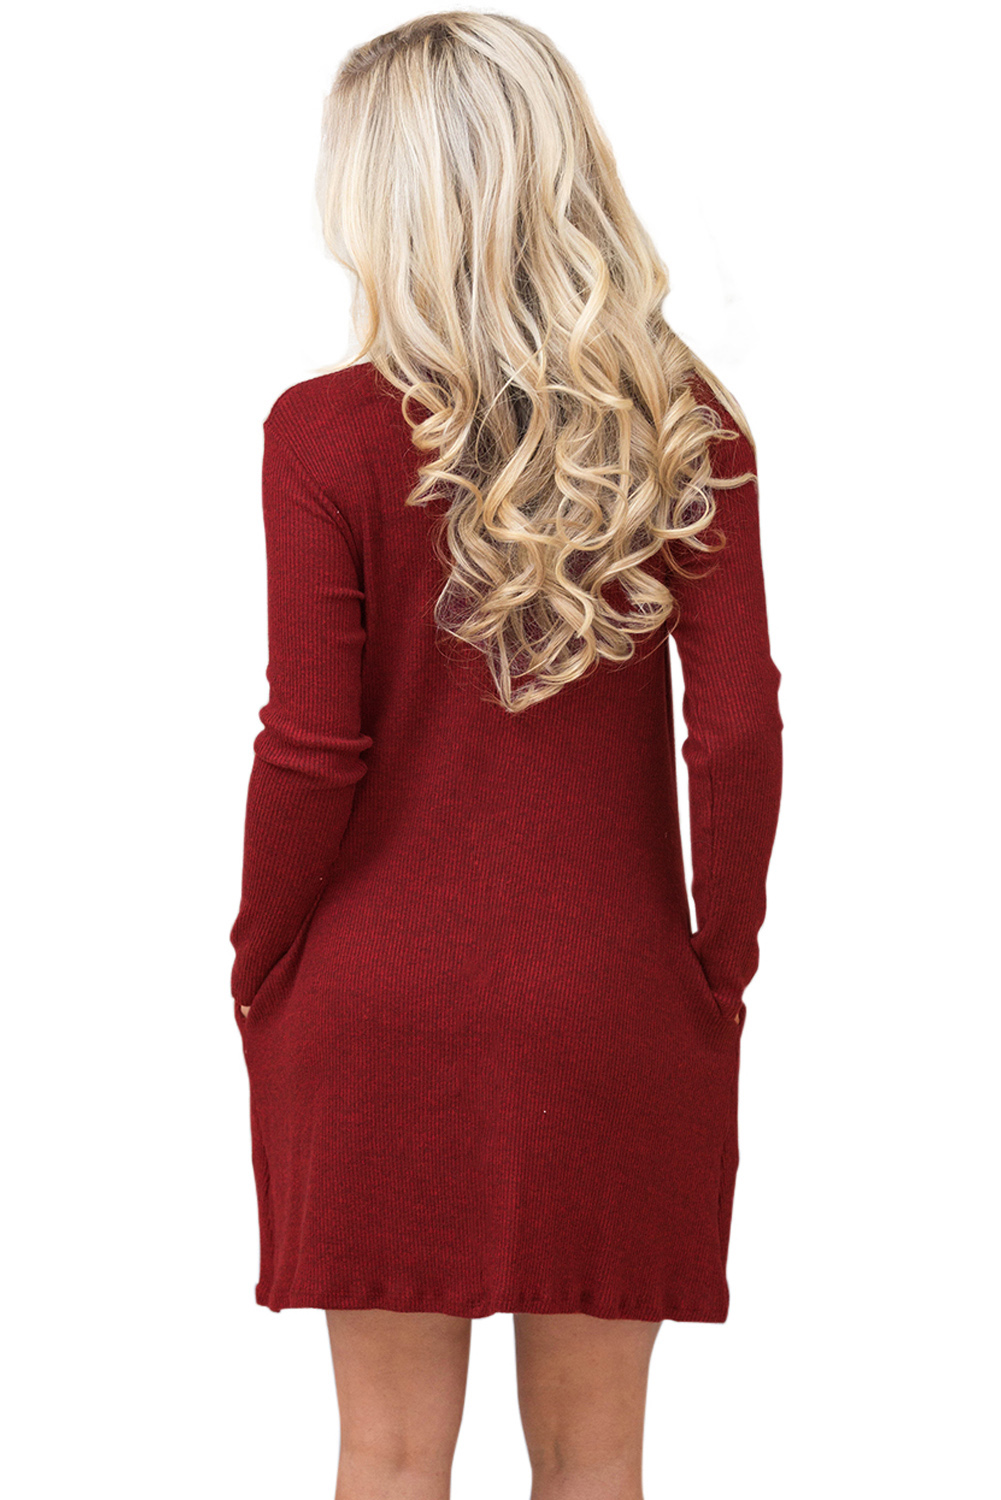 BY27712-3 Wine High Neck Long Sleeve Knit Sweater Dress